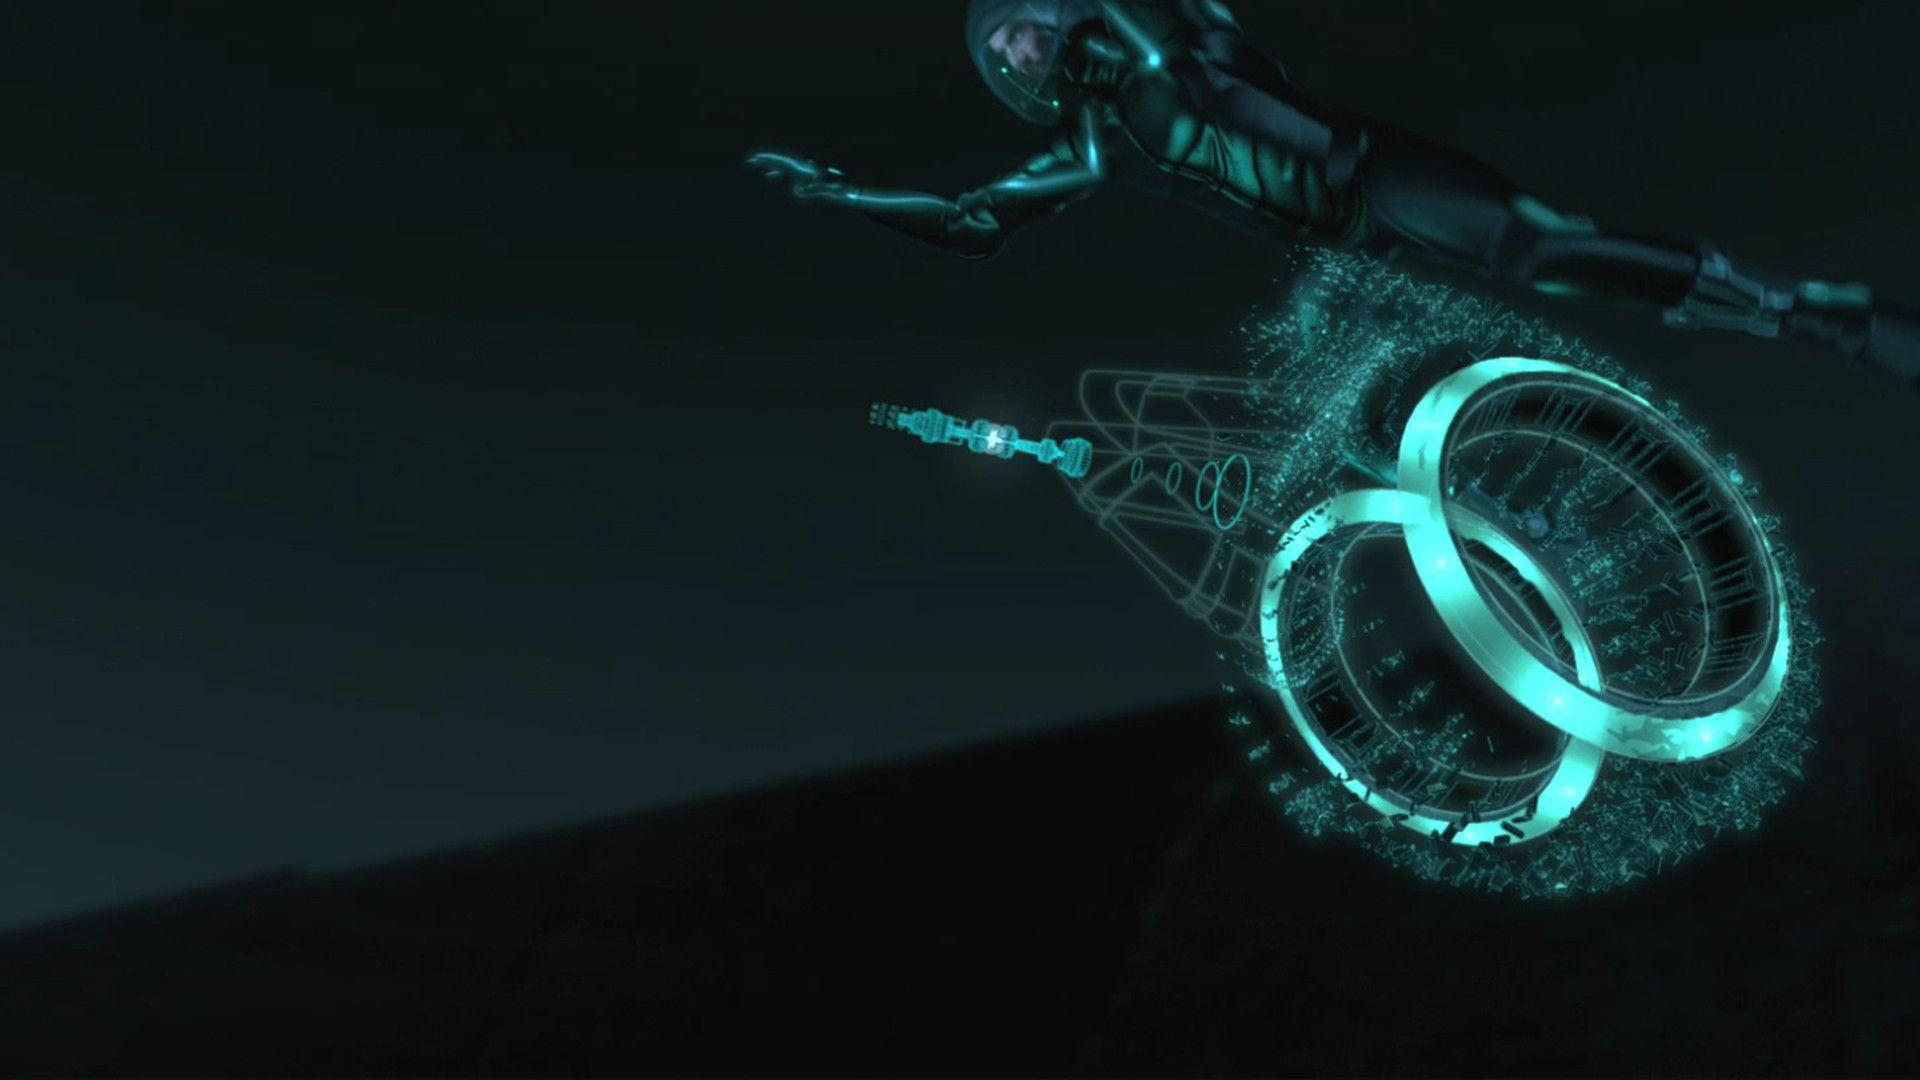 tron wallpaper hd style - photo #2